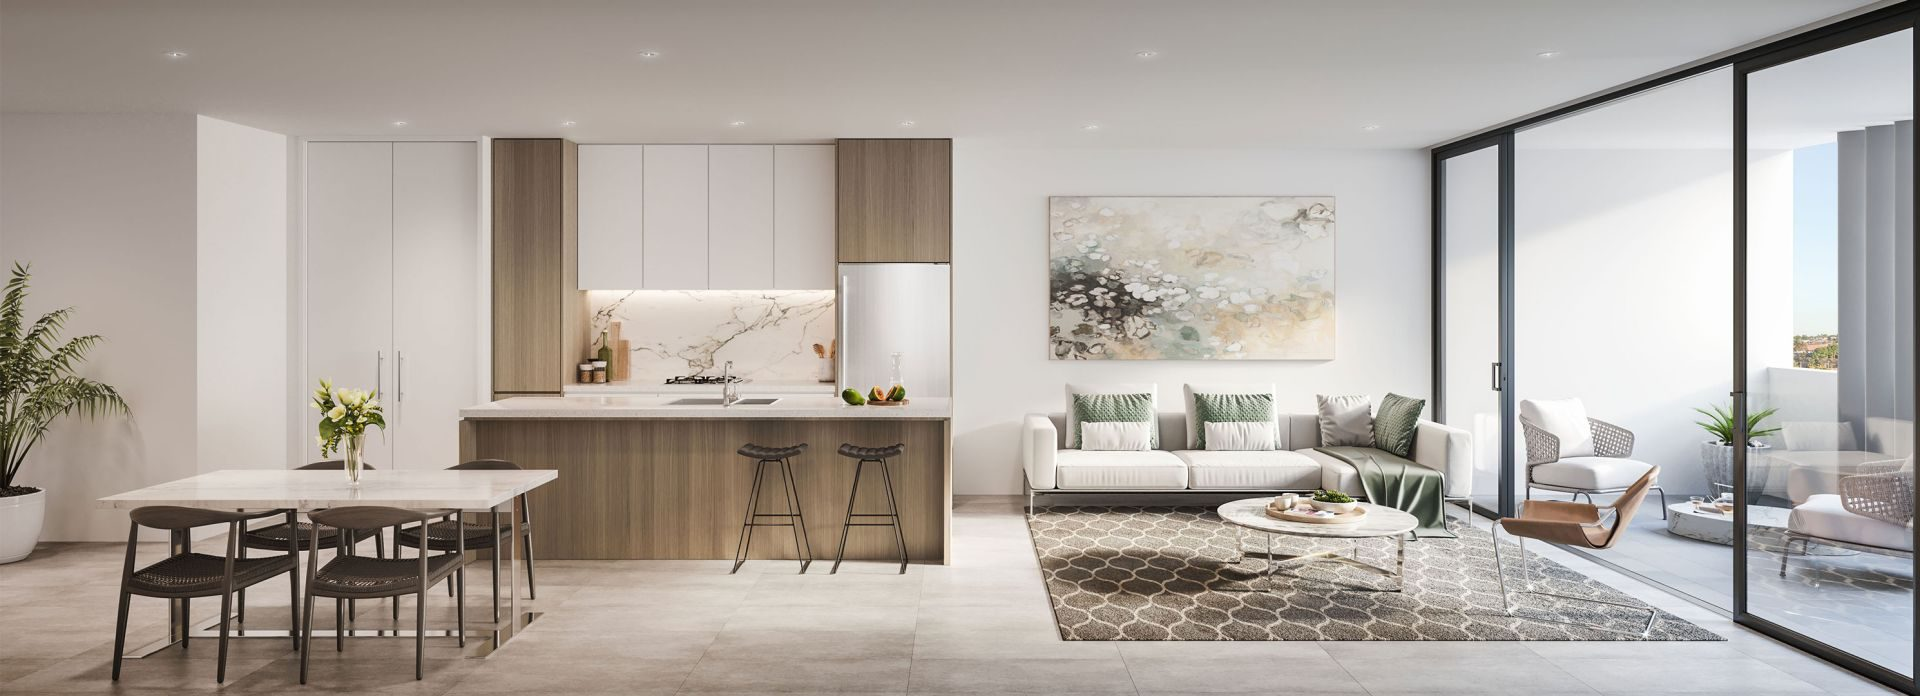 Kogarah Central apartments, living space